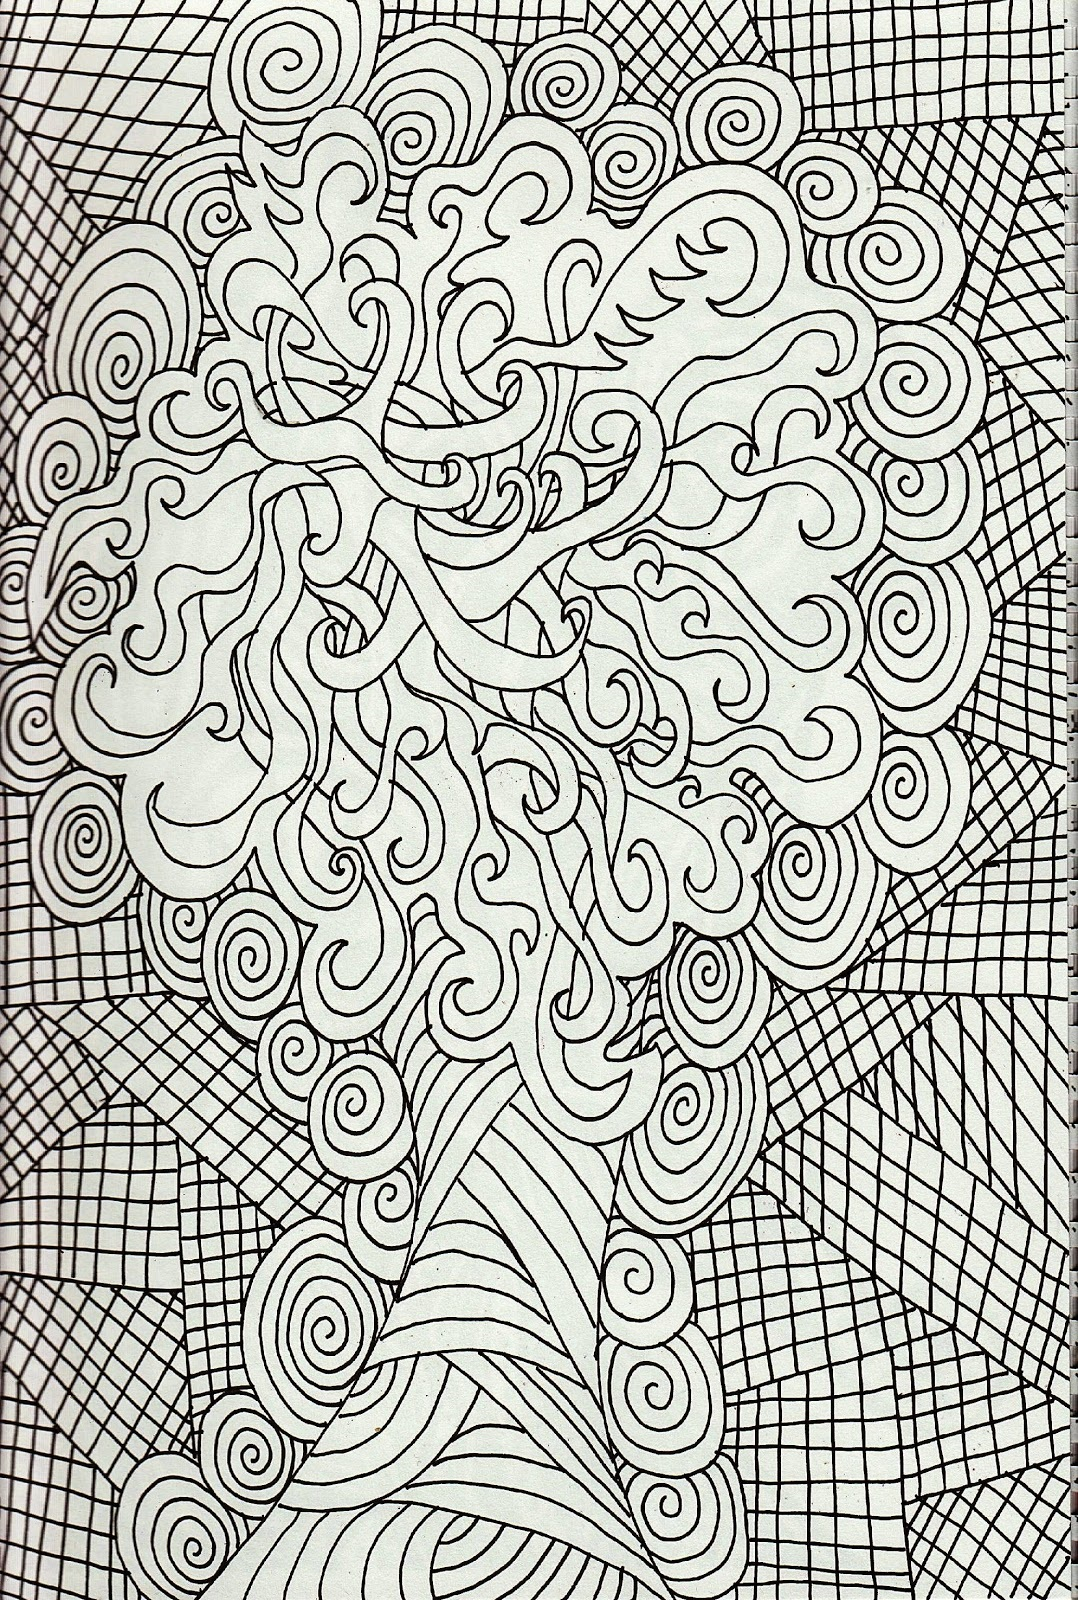 Free Coloring Pages Online for Adults